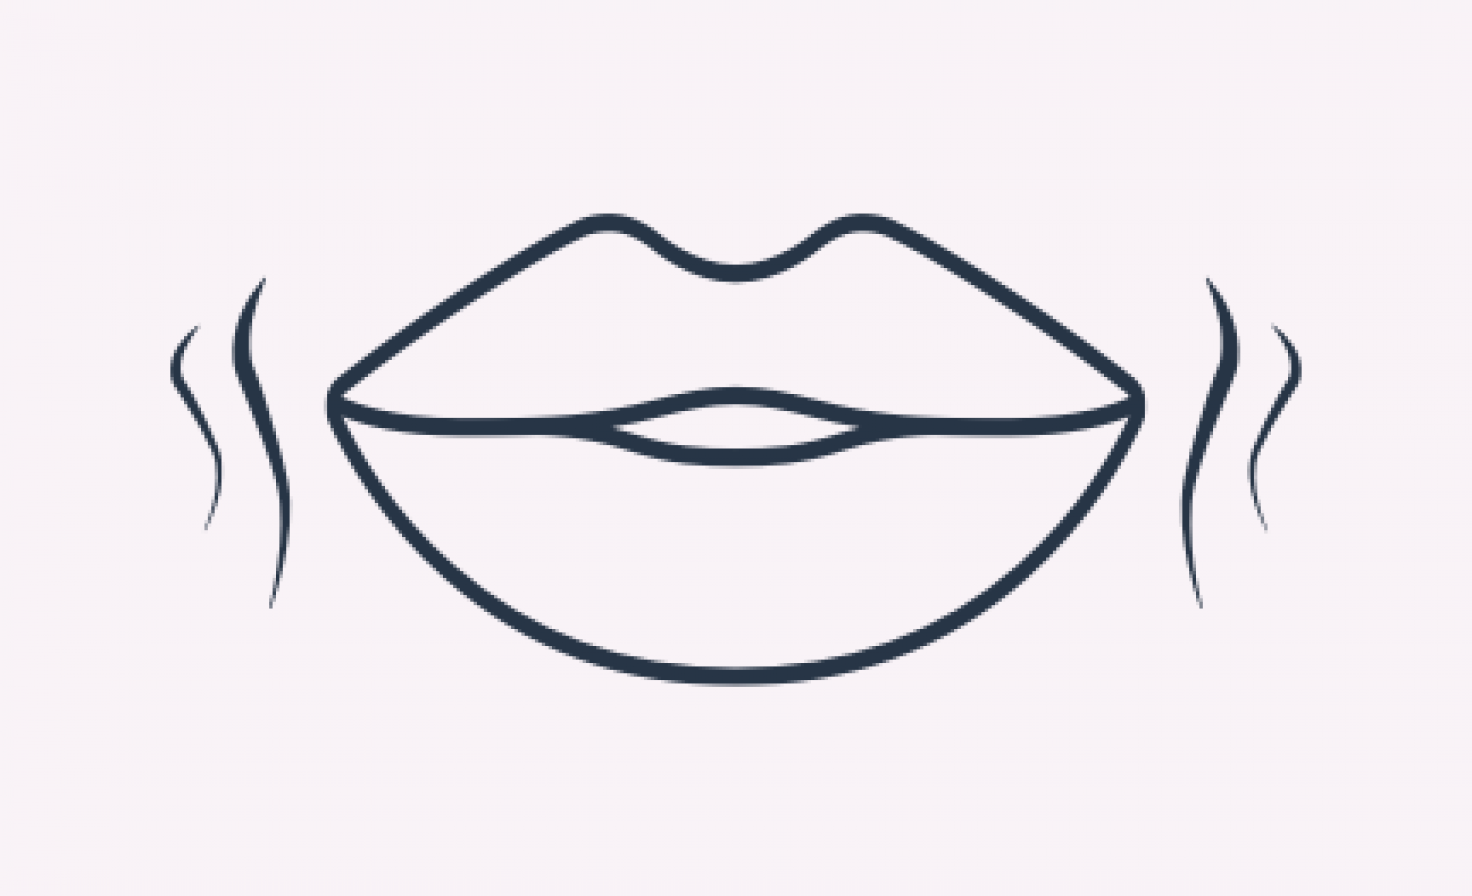 Diagram of lips